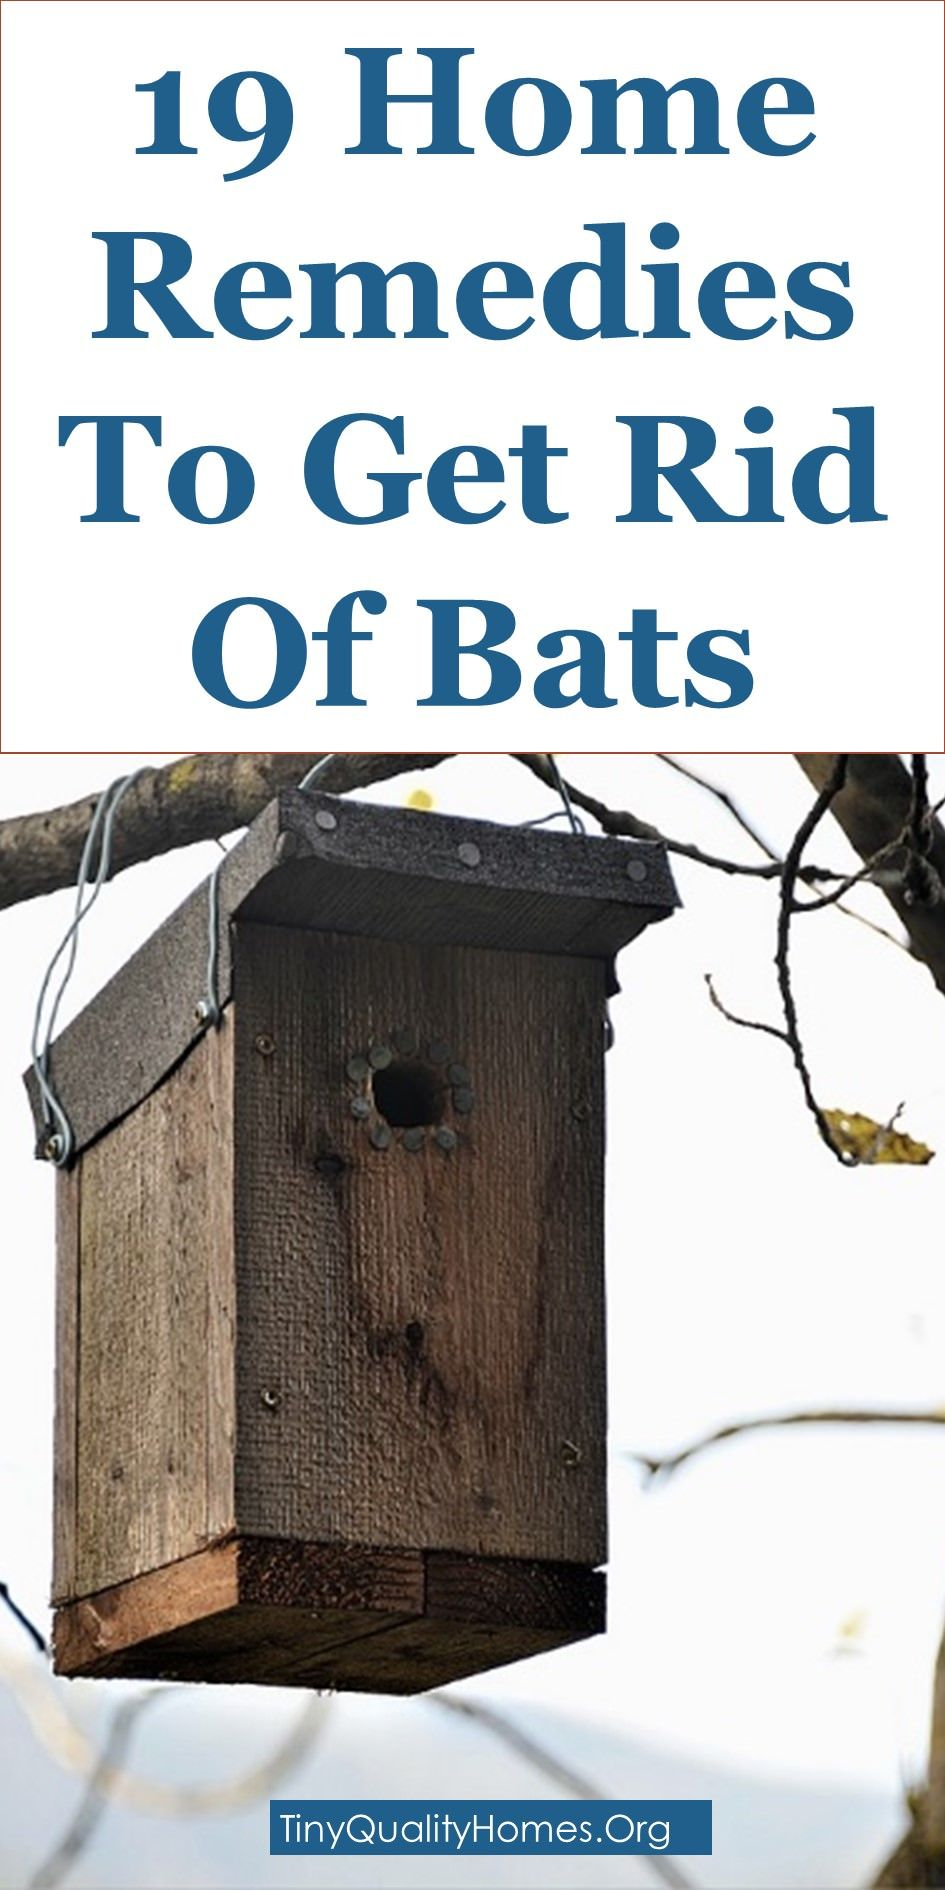 19 Home Remedies And Bat Repellents To Get Rid Of Bats Getting Rid Of Bats Bat Repellent Bat